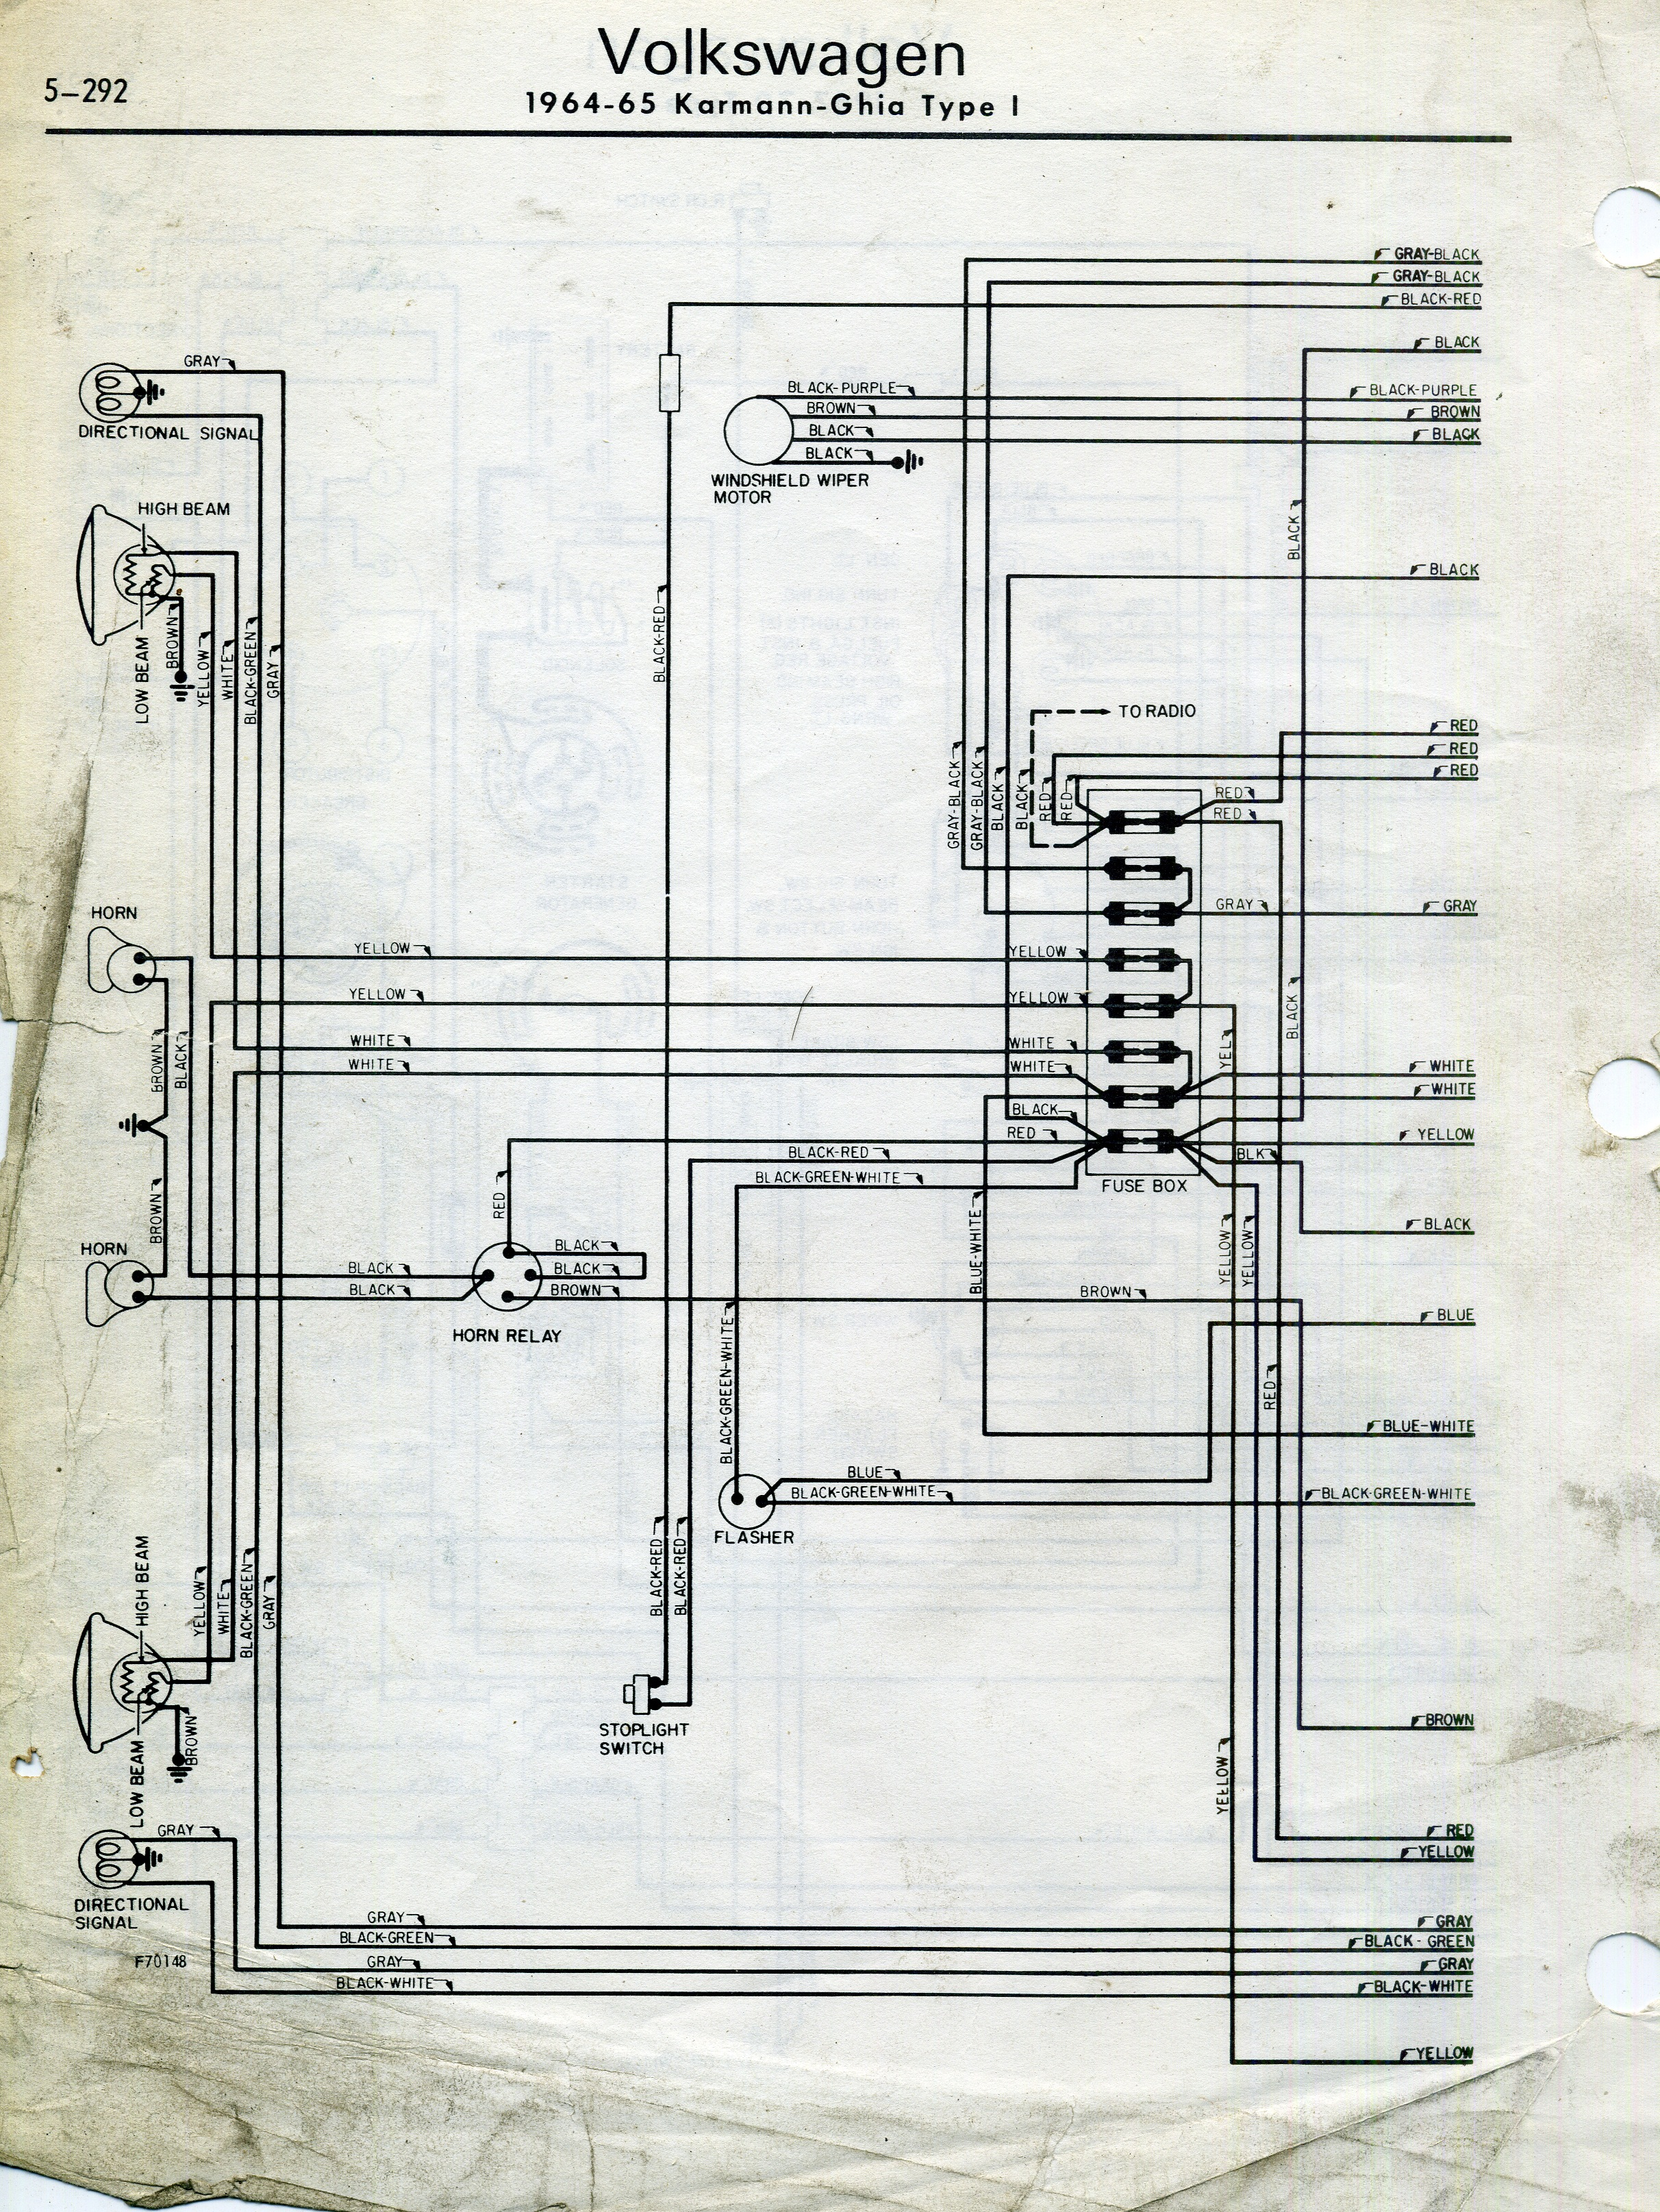 TheSamba Karmann Ghia Wiring Diagrams – Mitchell Wiring Diagrams